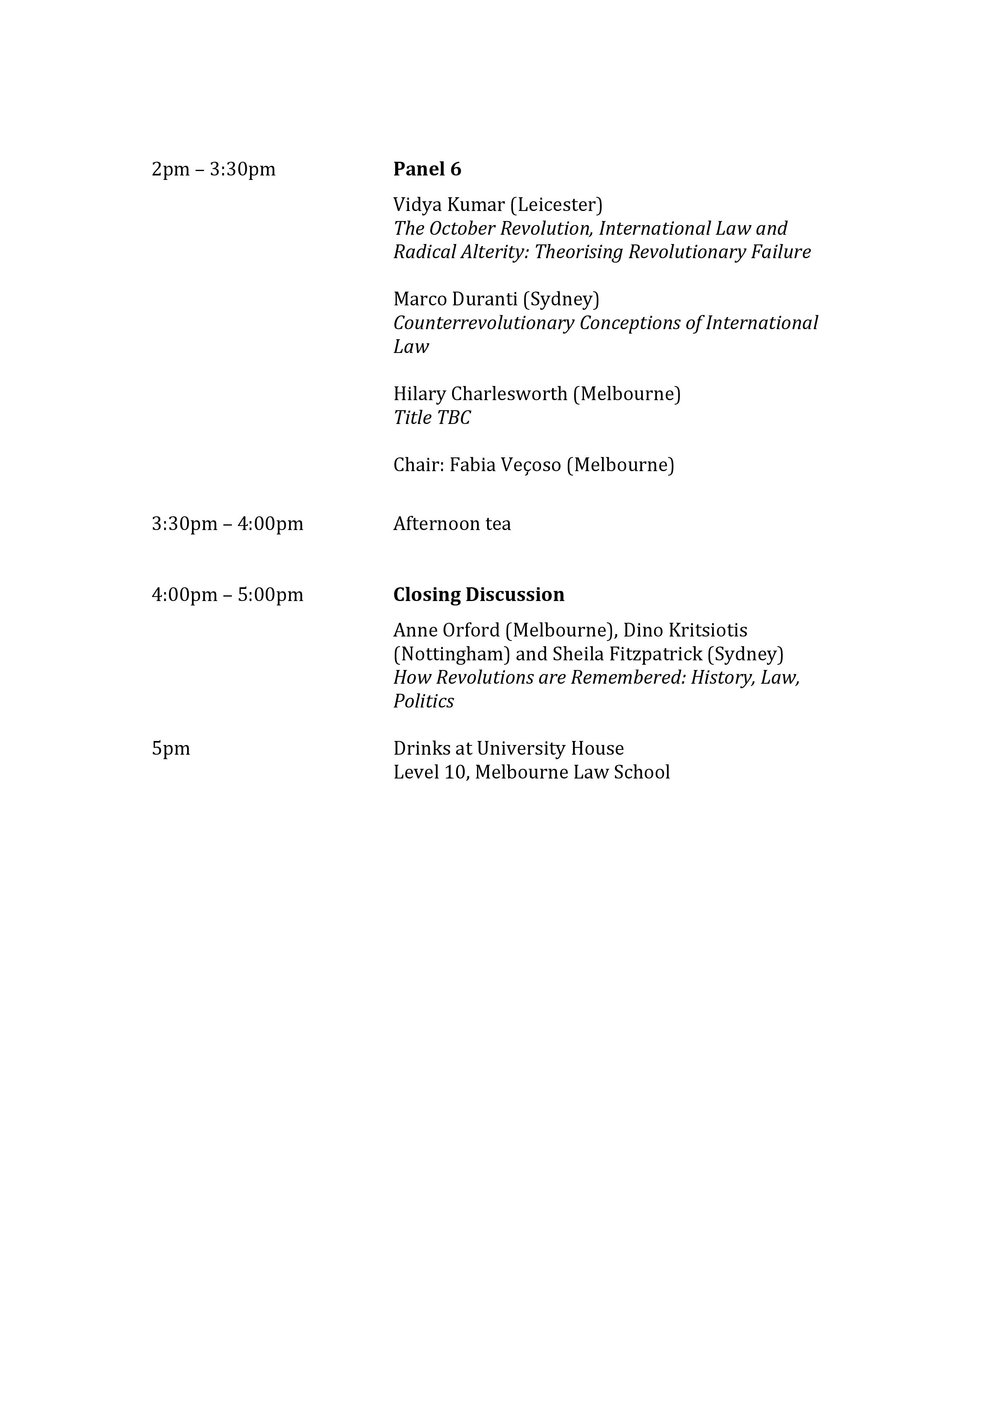 170809 Revolutions conference programme final-page-004.jpg